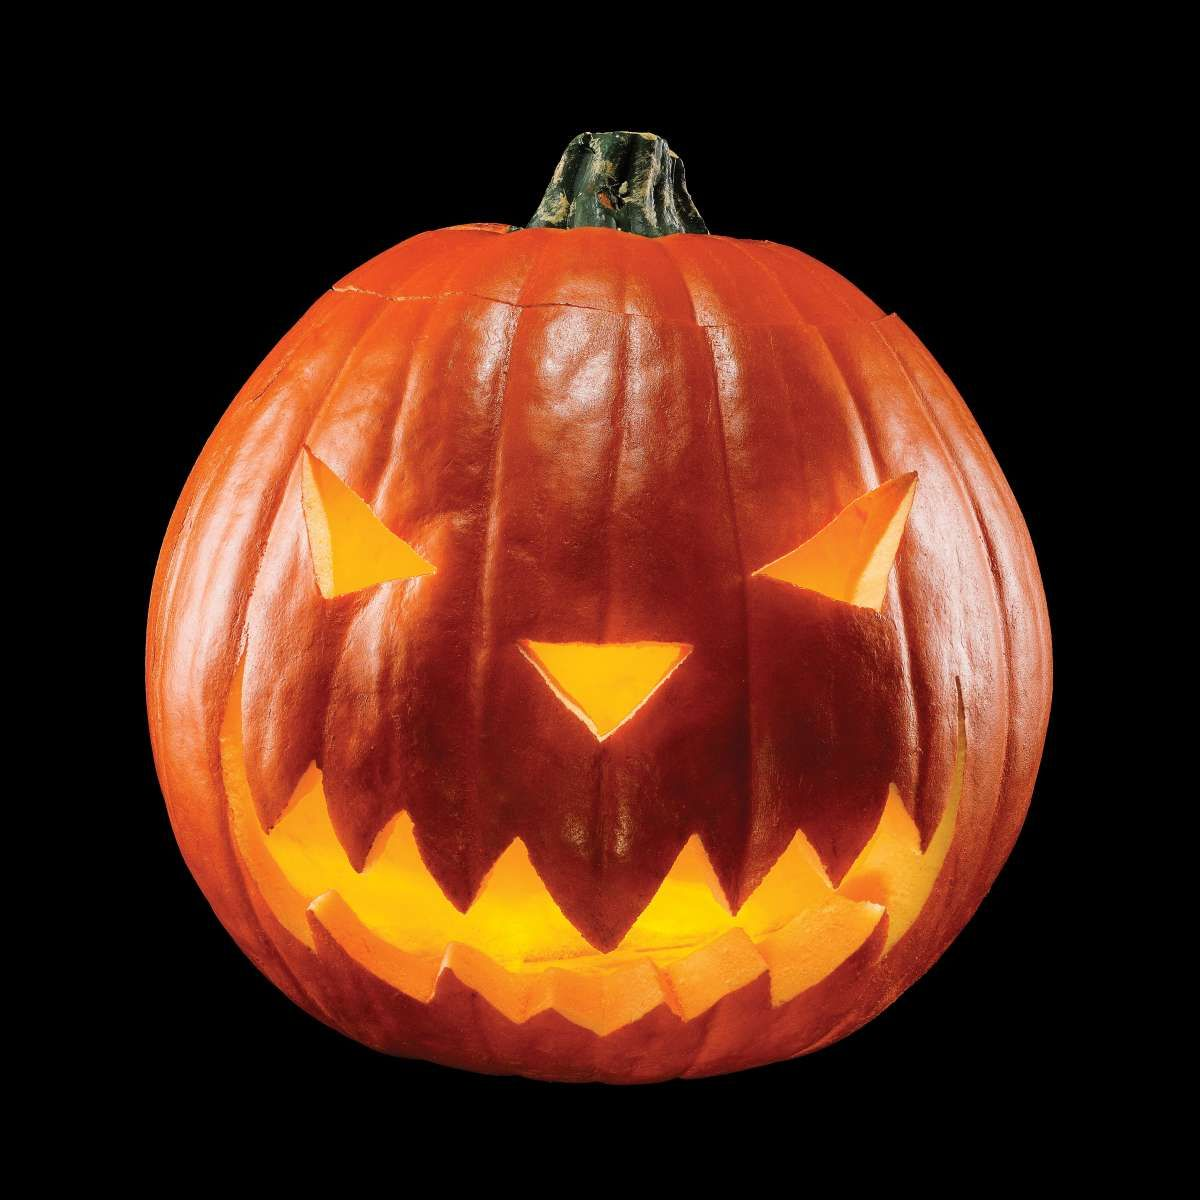 How To Build A Flameless Hack O Lantern